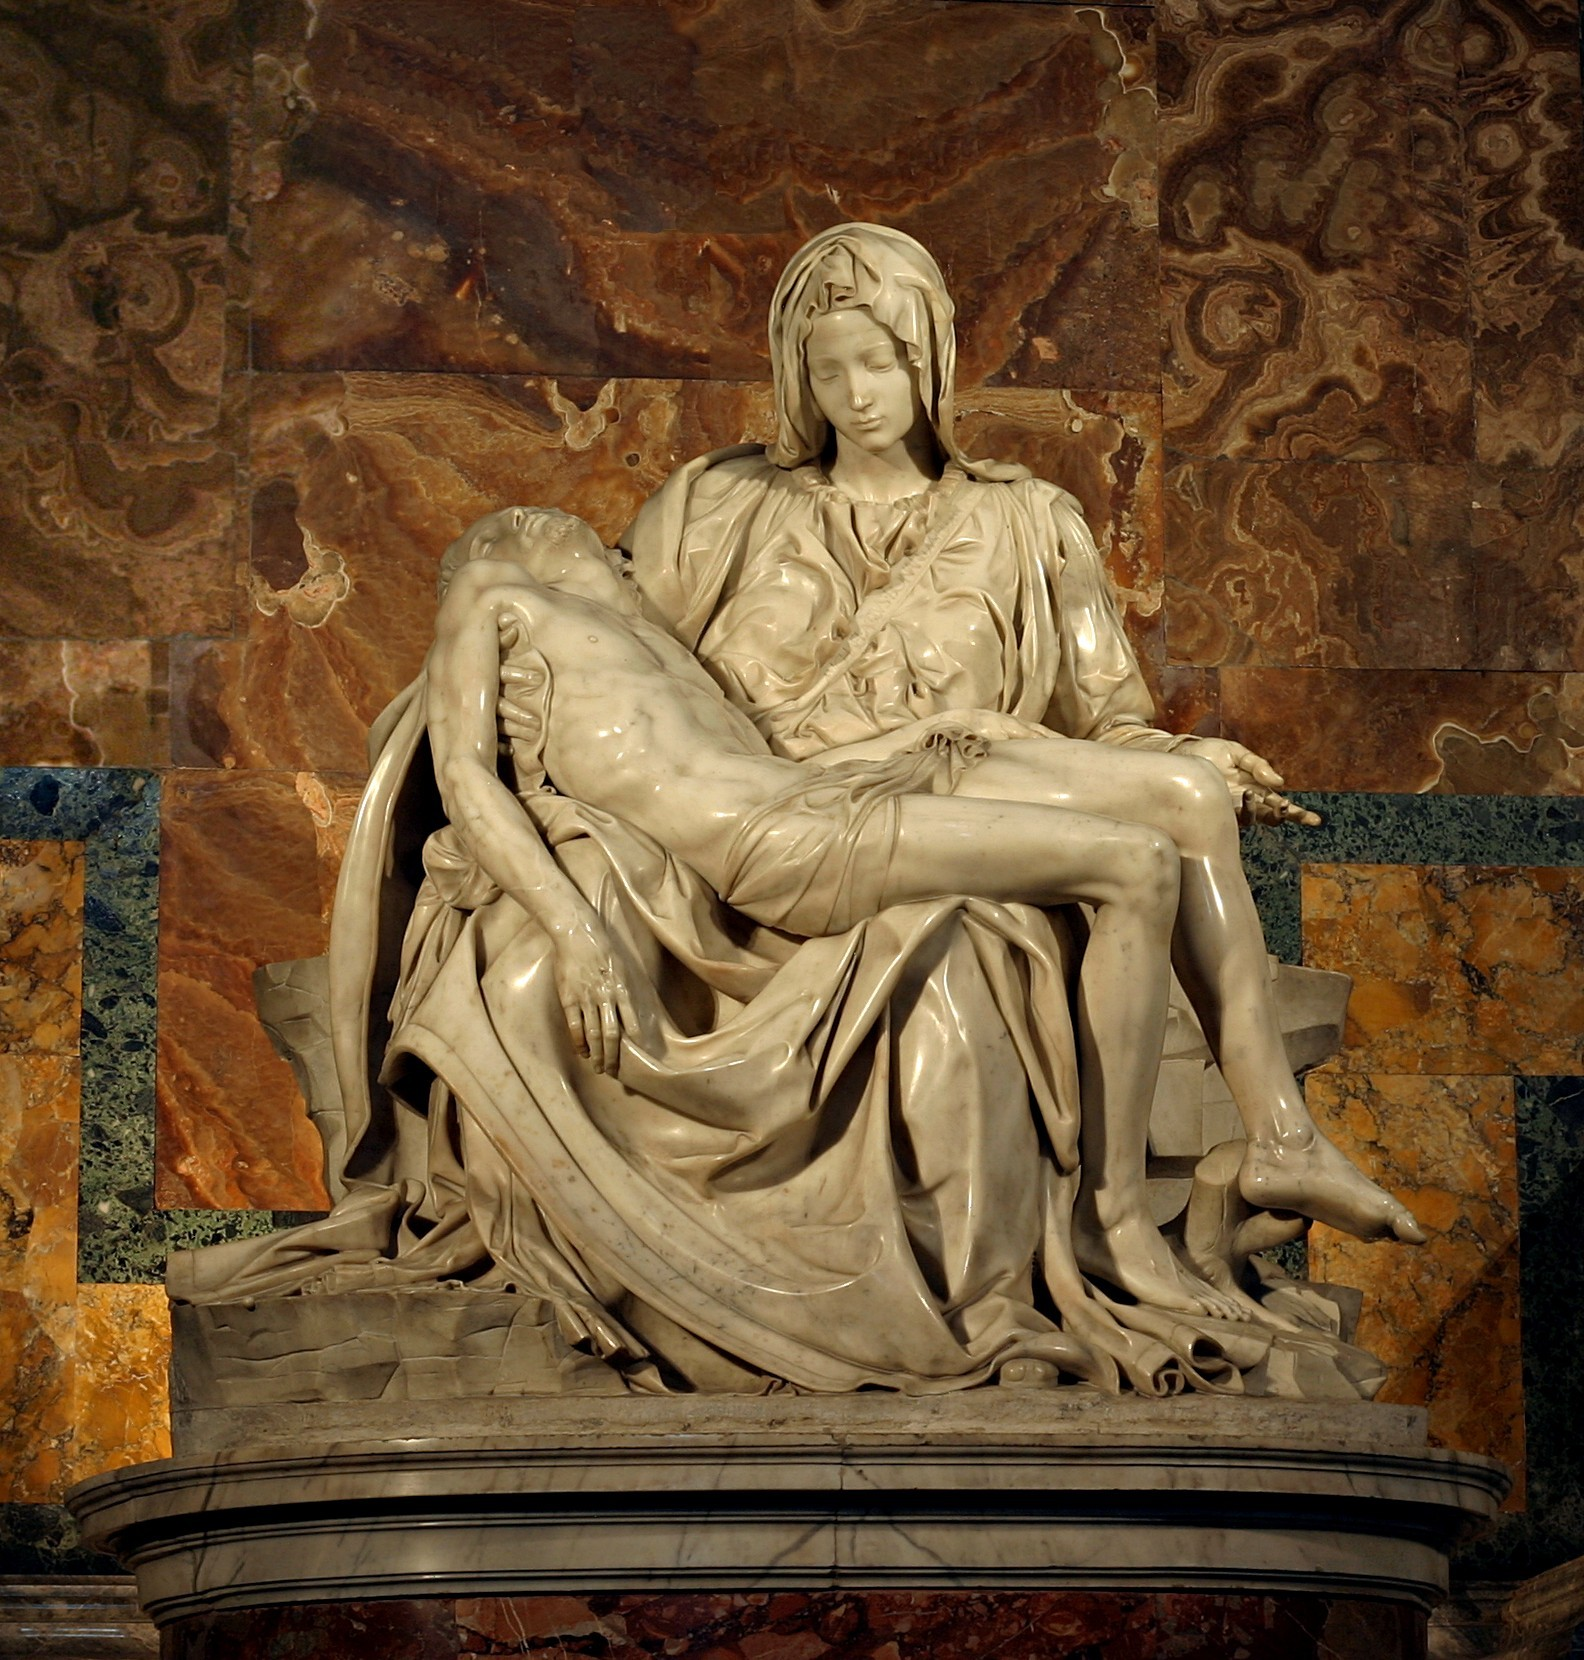 Pietà by Michaelangelo